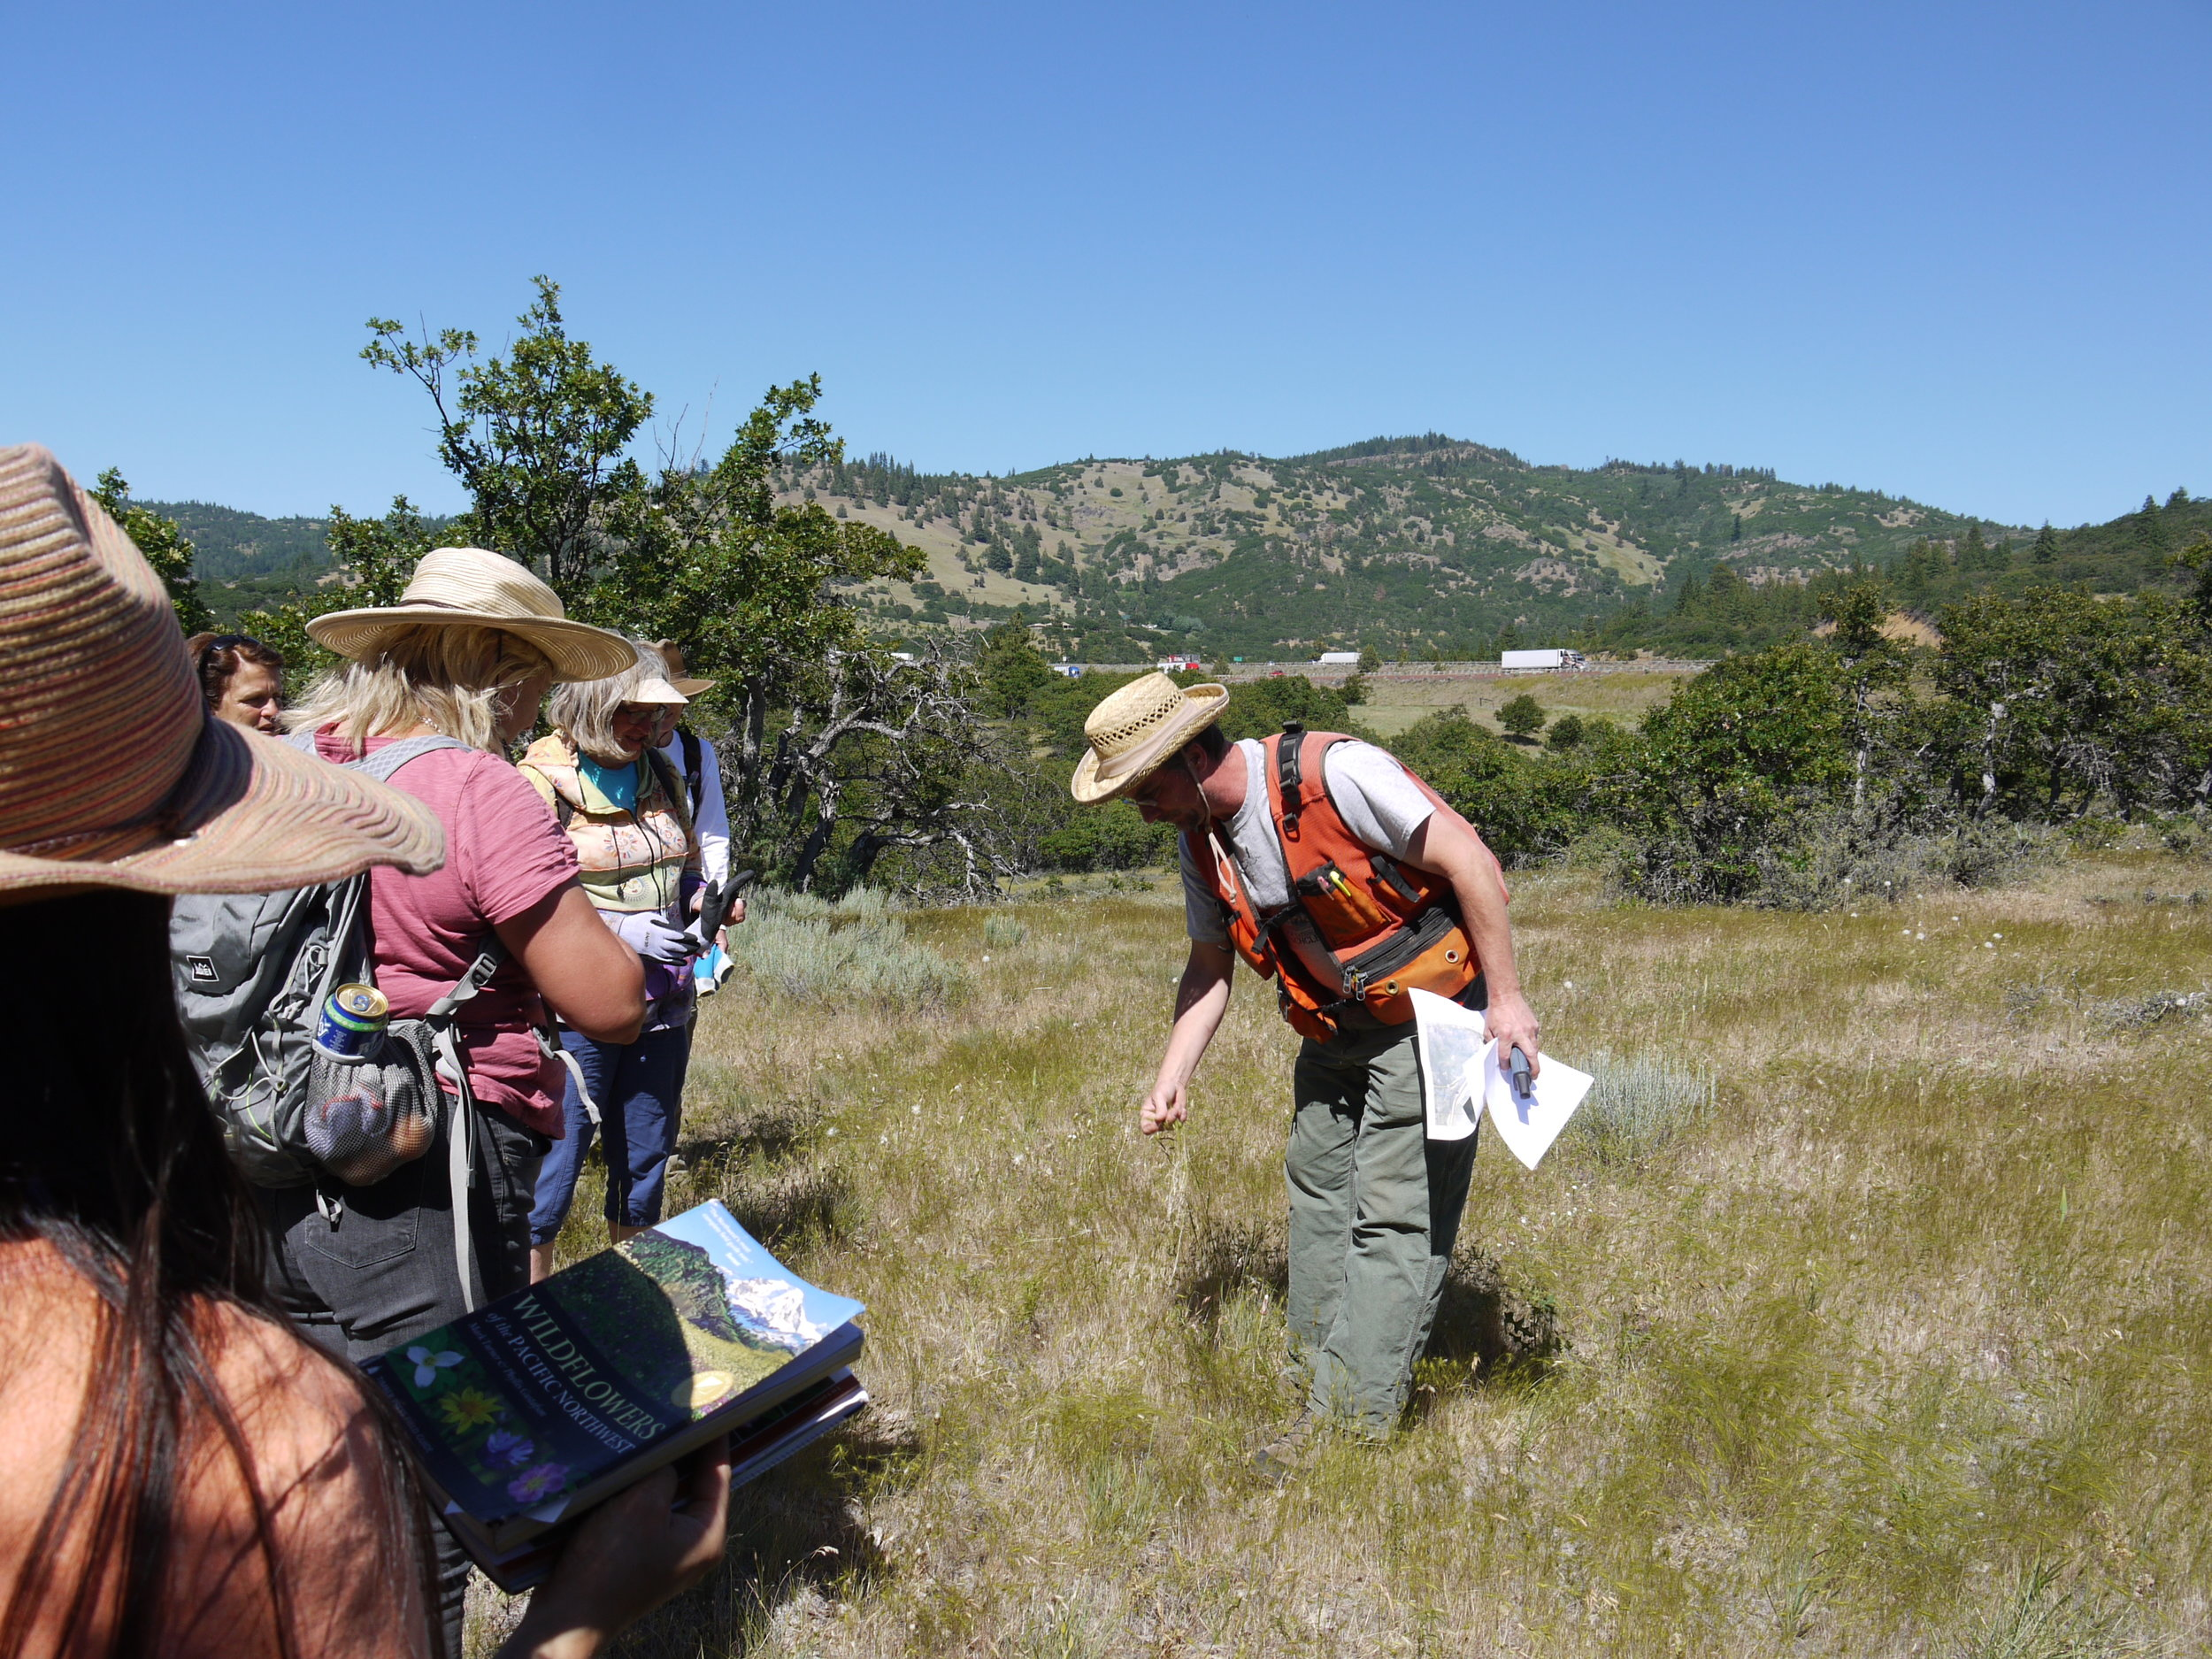 Volunteers assist in identifying rare plants and pulling invasive weeds during the Annual Star Thistle Pull at the Mariposa Preserve in the Cascade-Siskiyou National Monument, a collaboration with the Medford BLM office, Native Plant Society of Oregon Siskiyou Chapter, and Friends of the Cascade-Siskiyou National Monument.